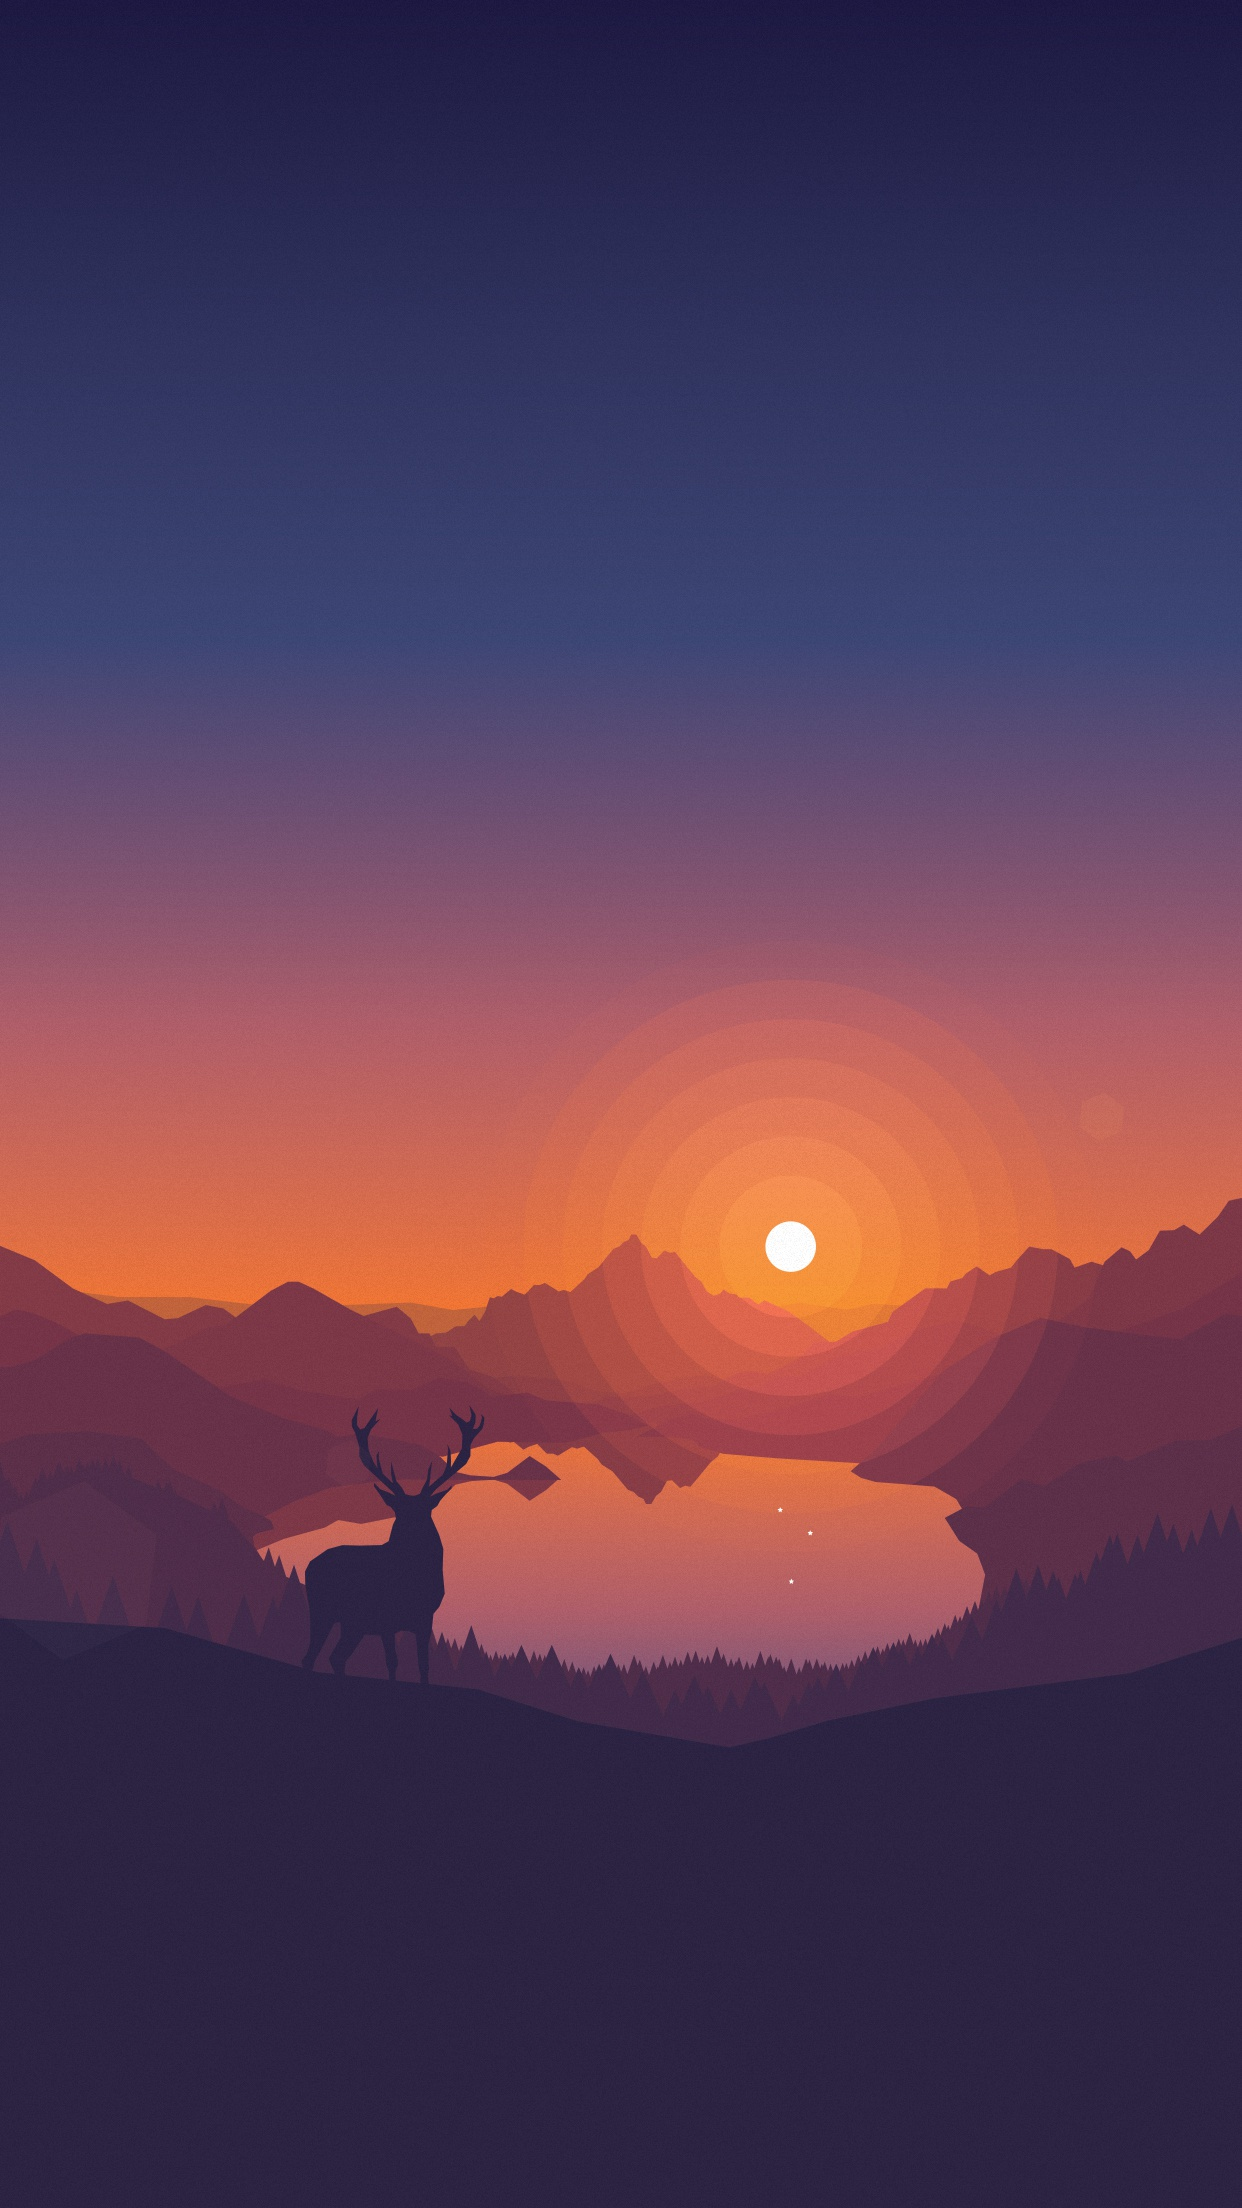 Dribbble Lakeside Sunset 1242x2208 Ios6 Jpg By Louis Coyle